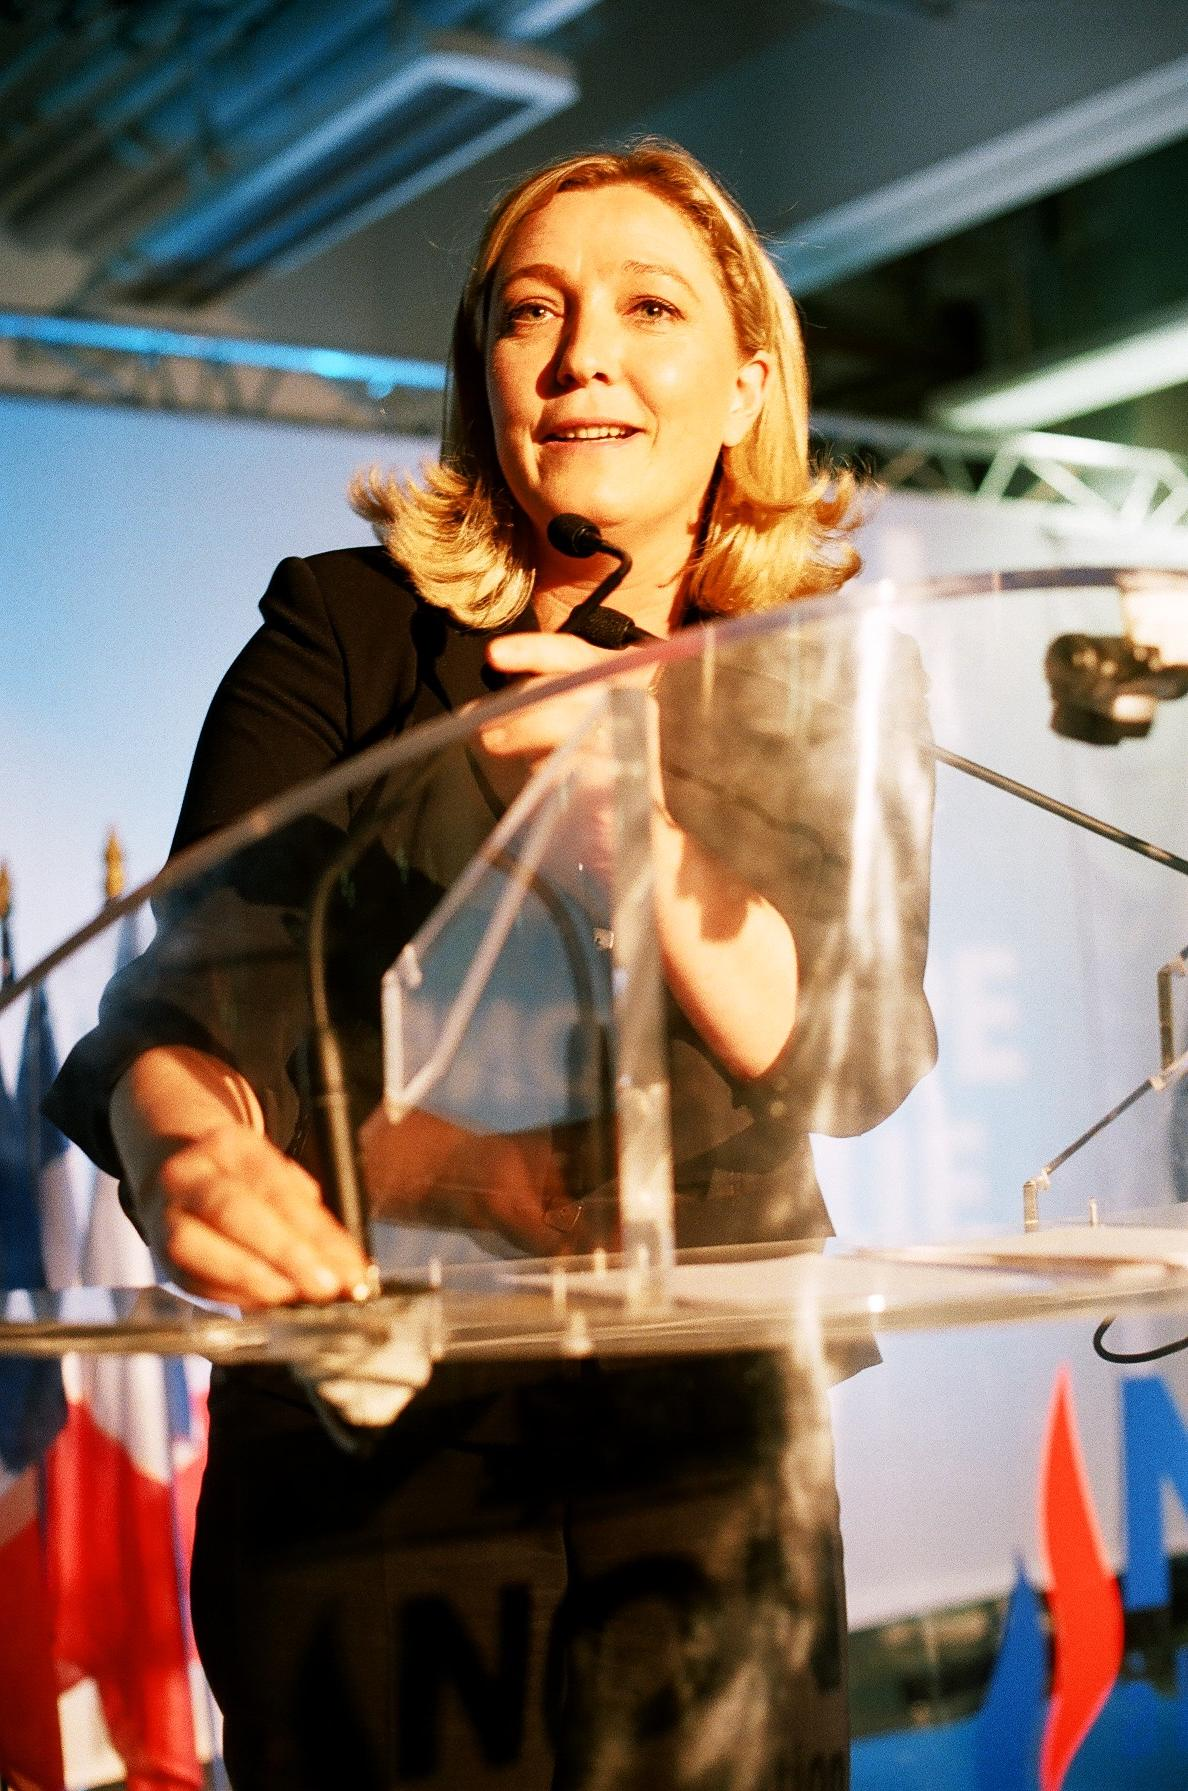 http://upload.wikimedia.org/wikipedia/commons/3/3c/MARINELEPEN.jpg